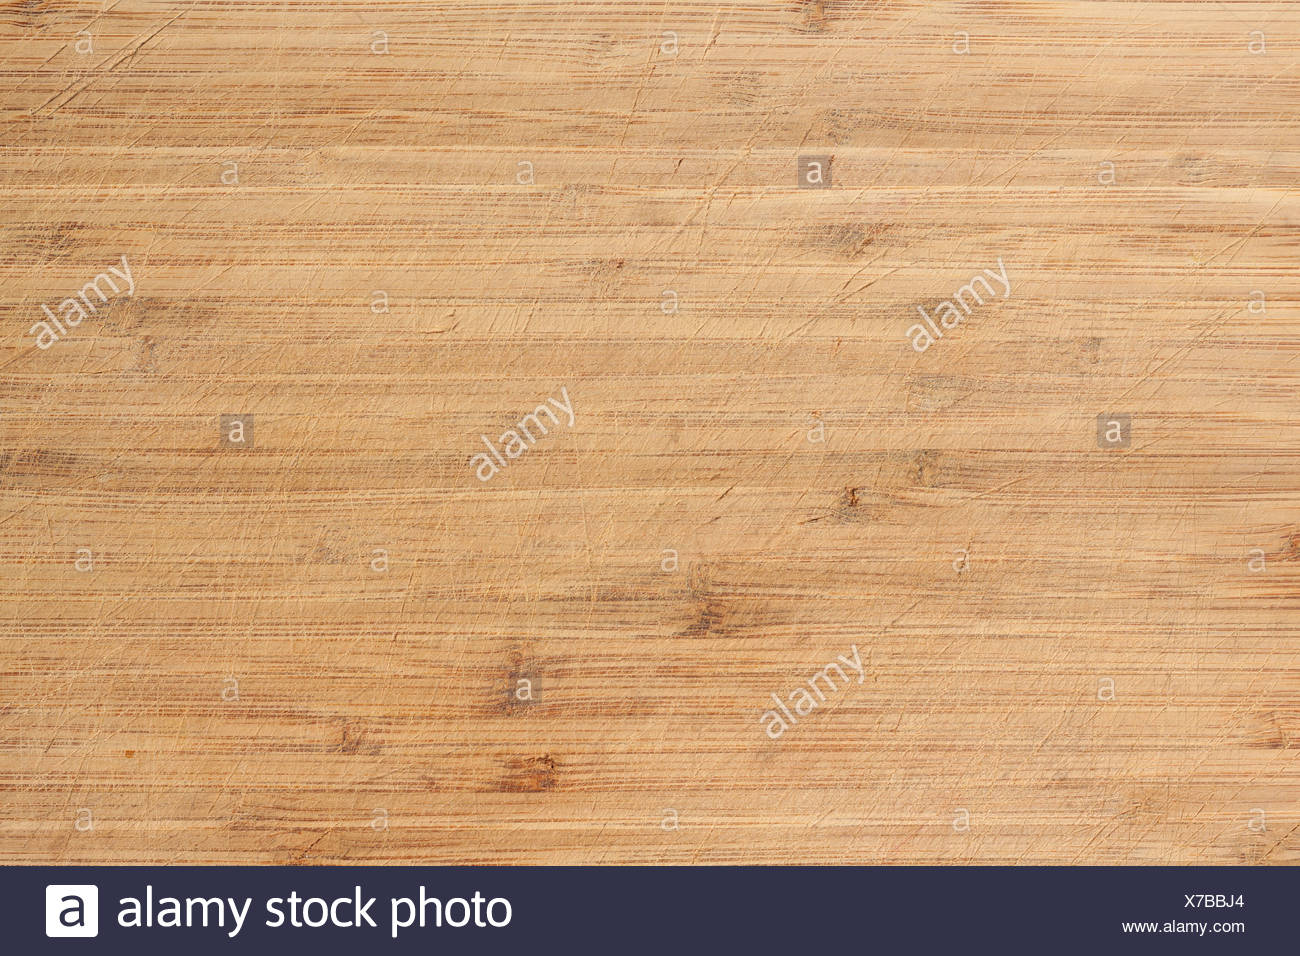 Old worn and scratched cutting board Perfect background or texture. - Stock Image